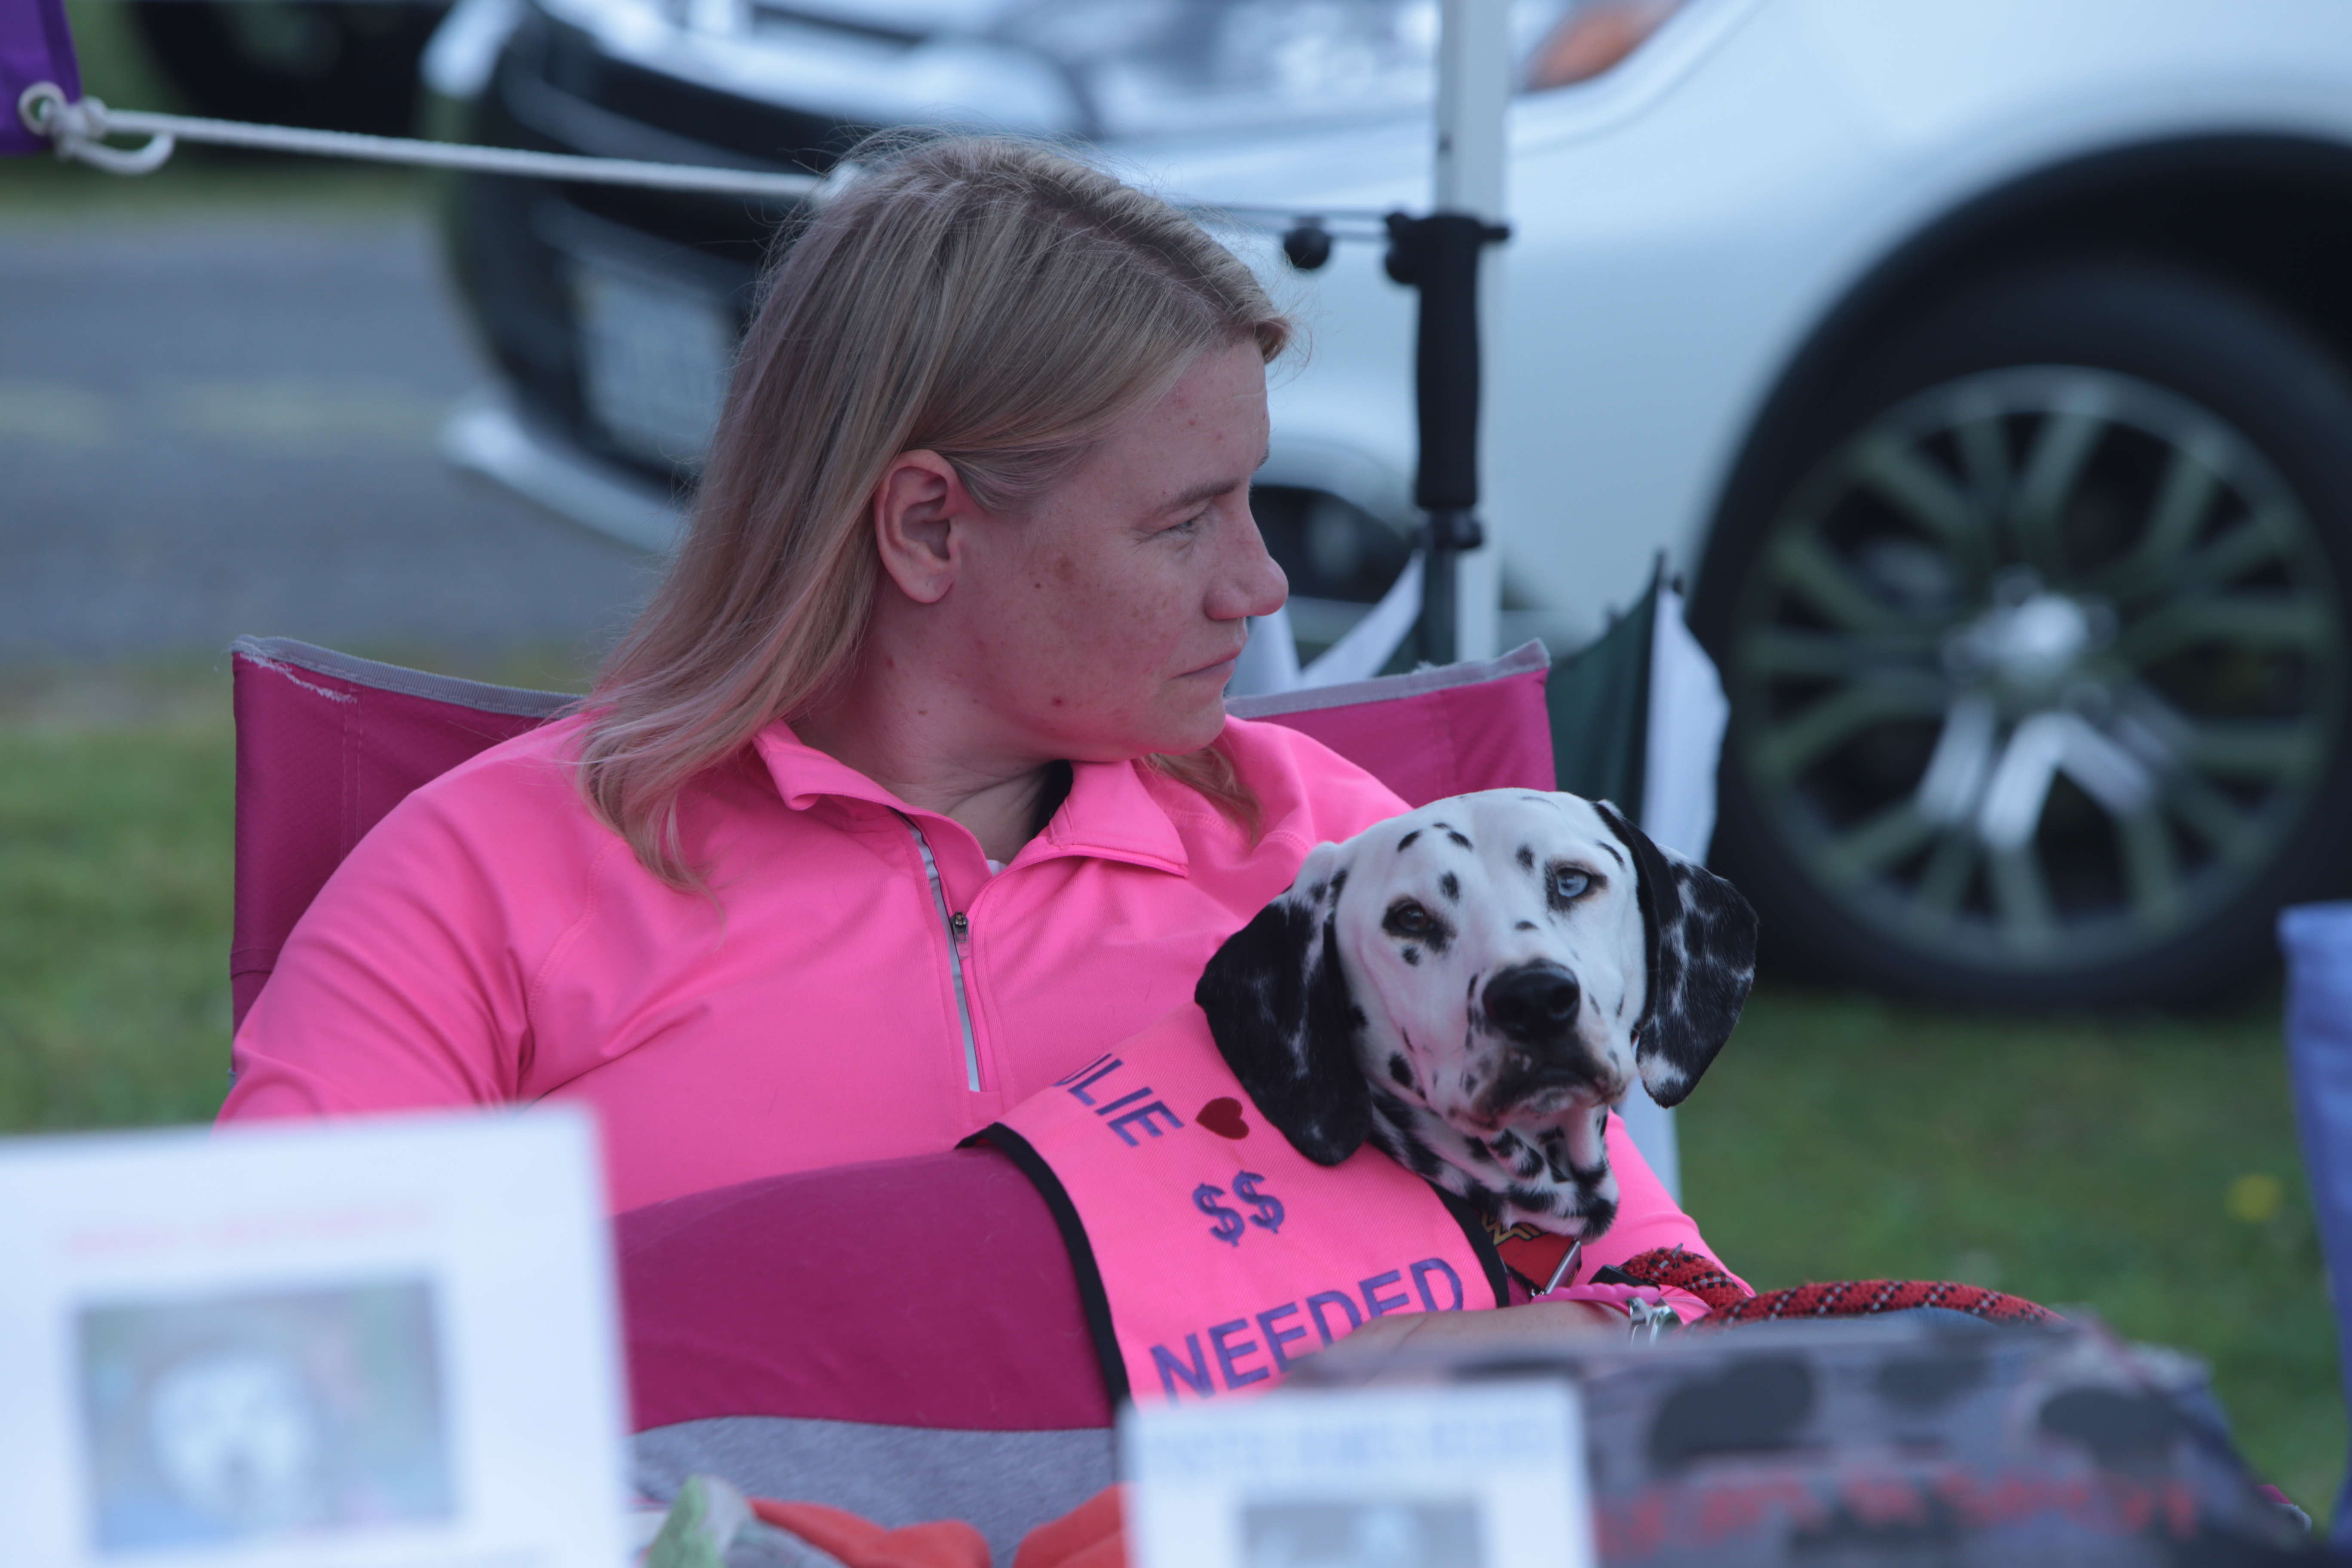 lady in pink with dalmation